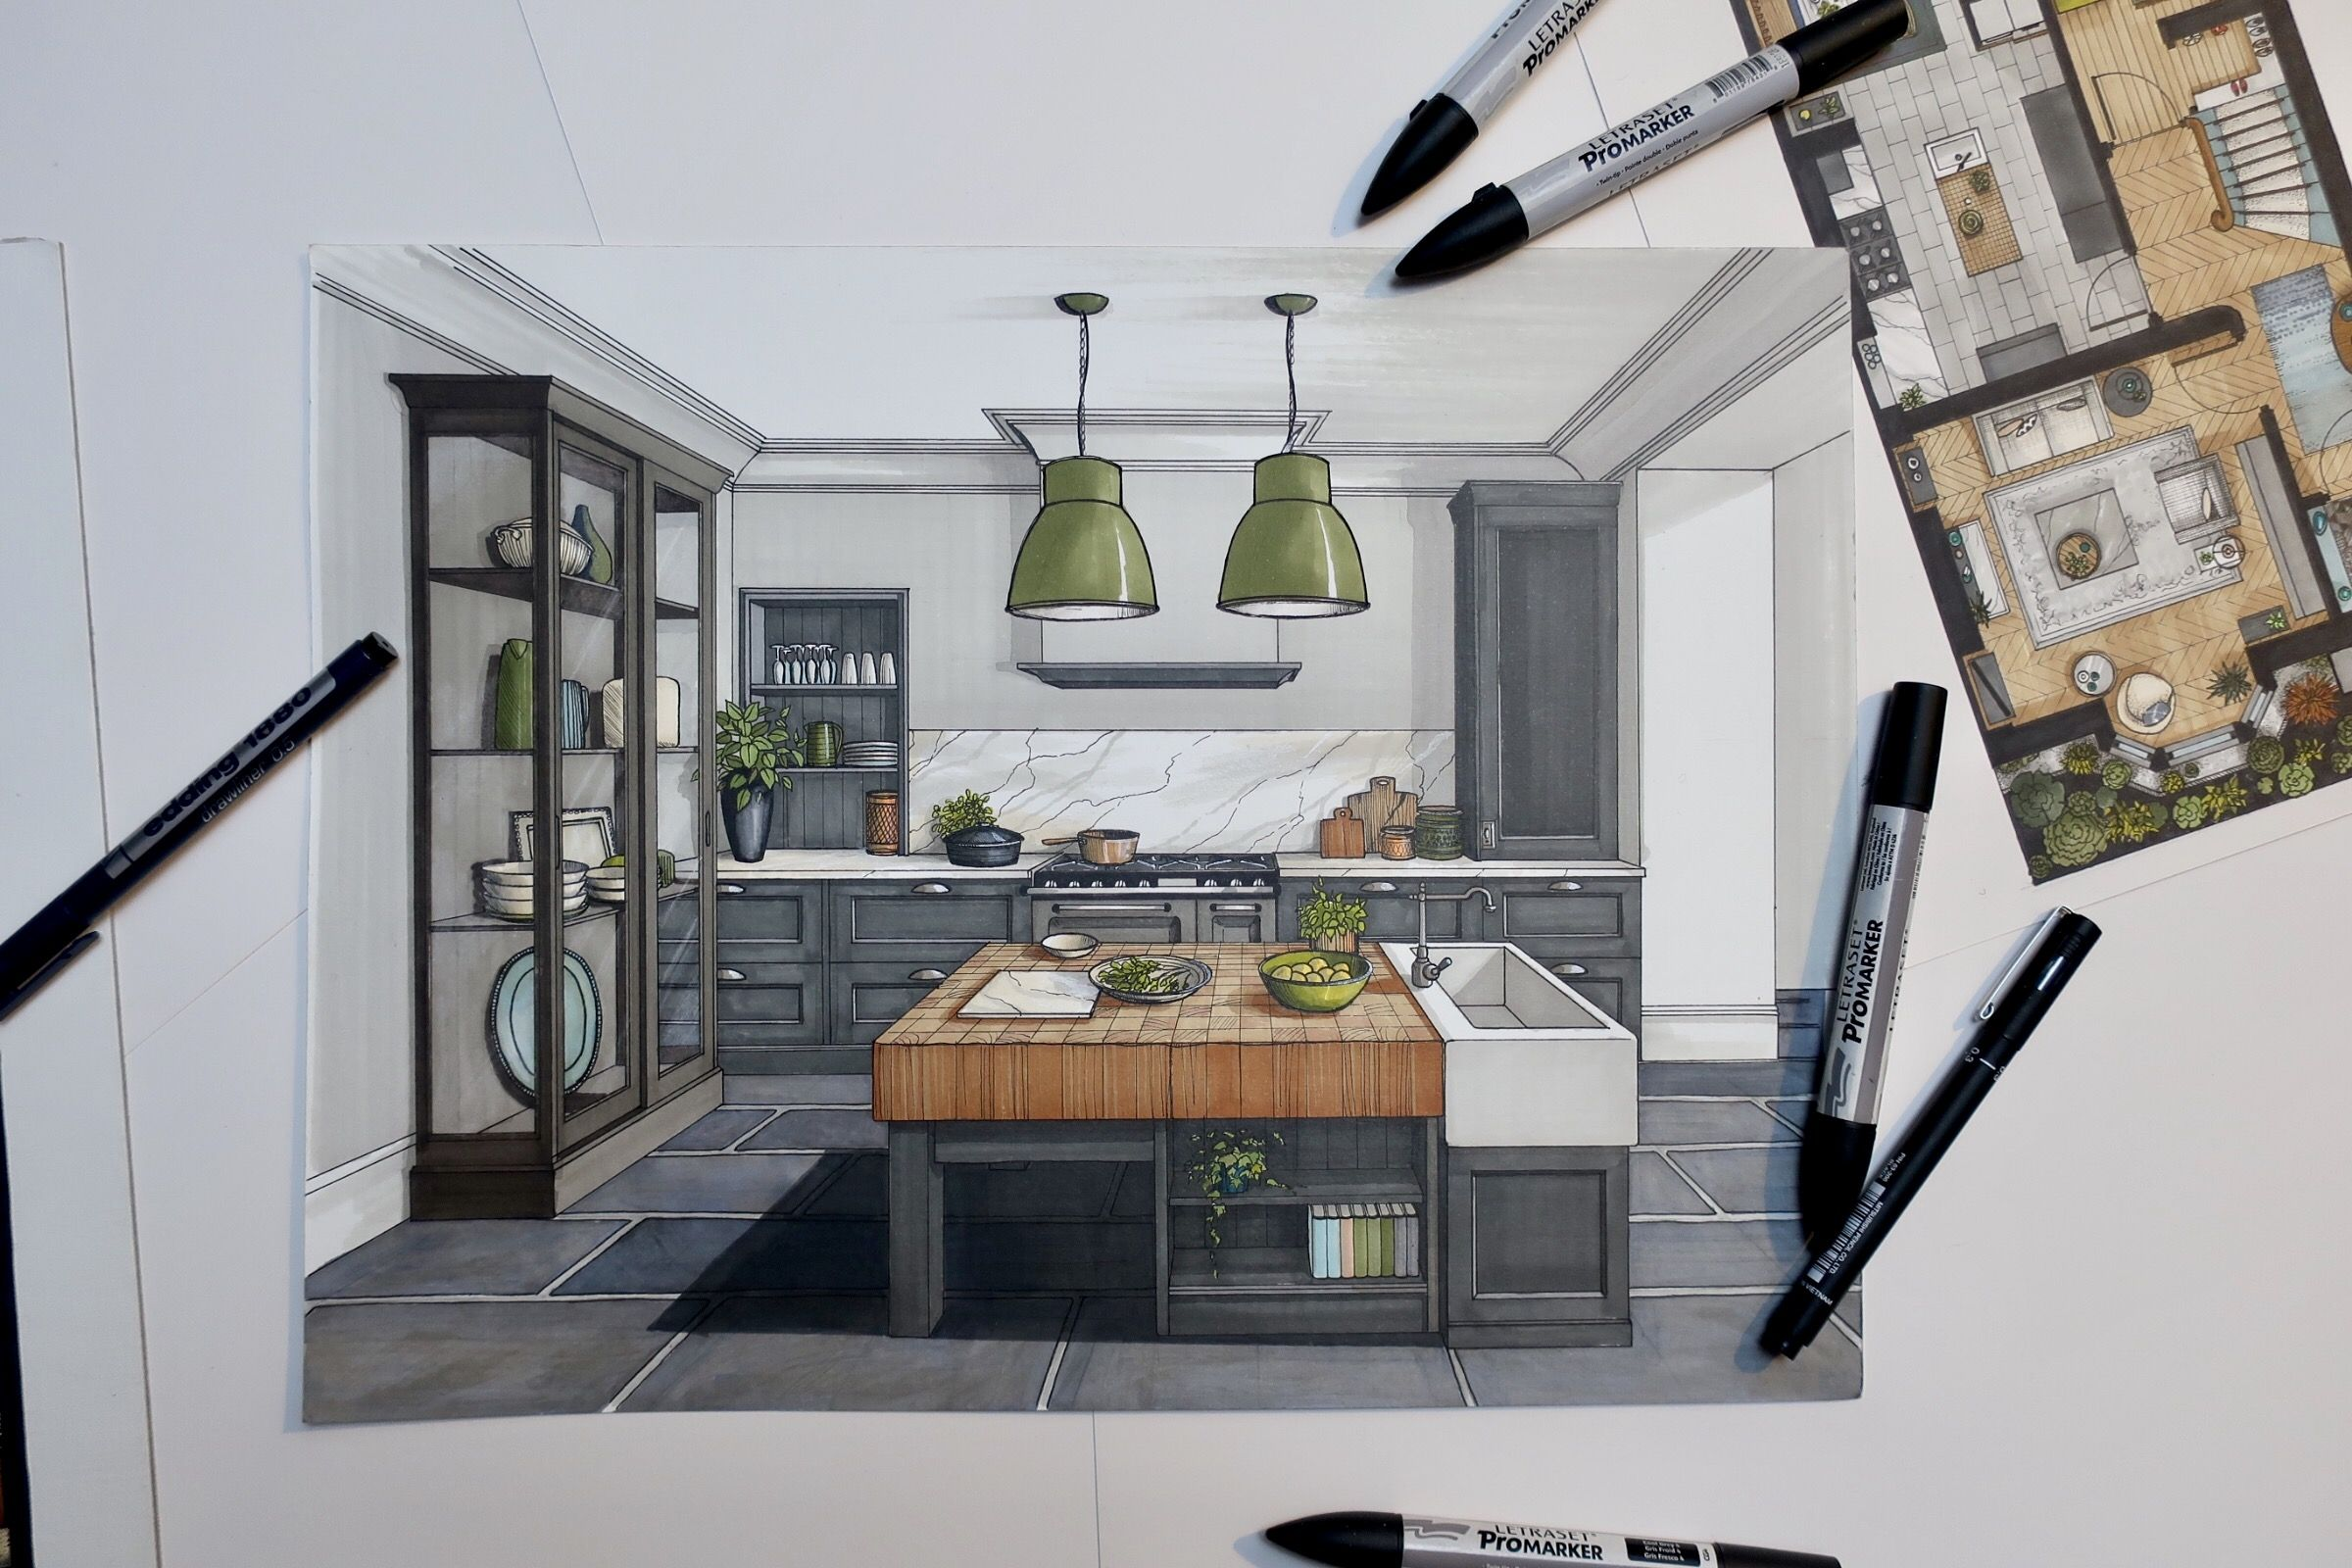 Interior Design Rendering Of Proposed Kitchen Extension Drawing Using Promarker An Interior Design Drawings Interior Design Renderings Interior Design Kitchen,Beautiful Simple Mehndi Designs For Kids Full Hand